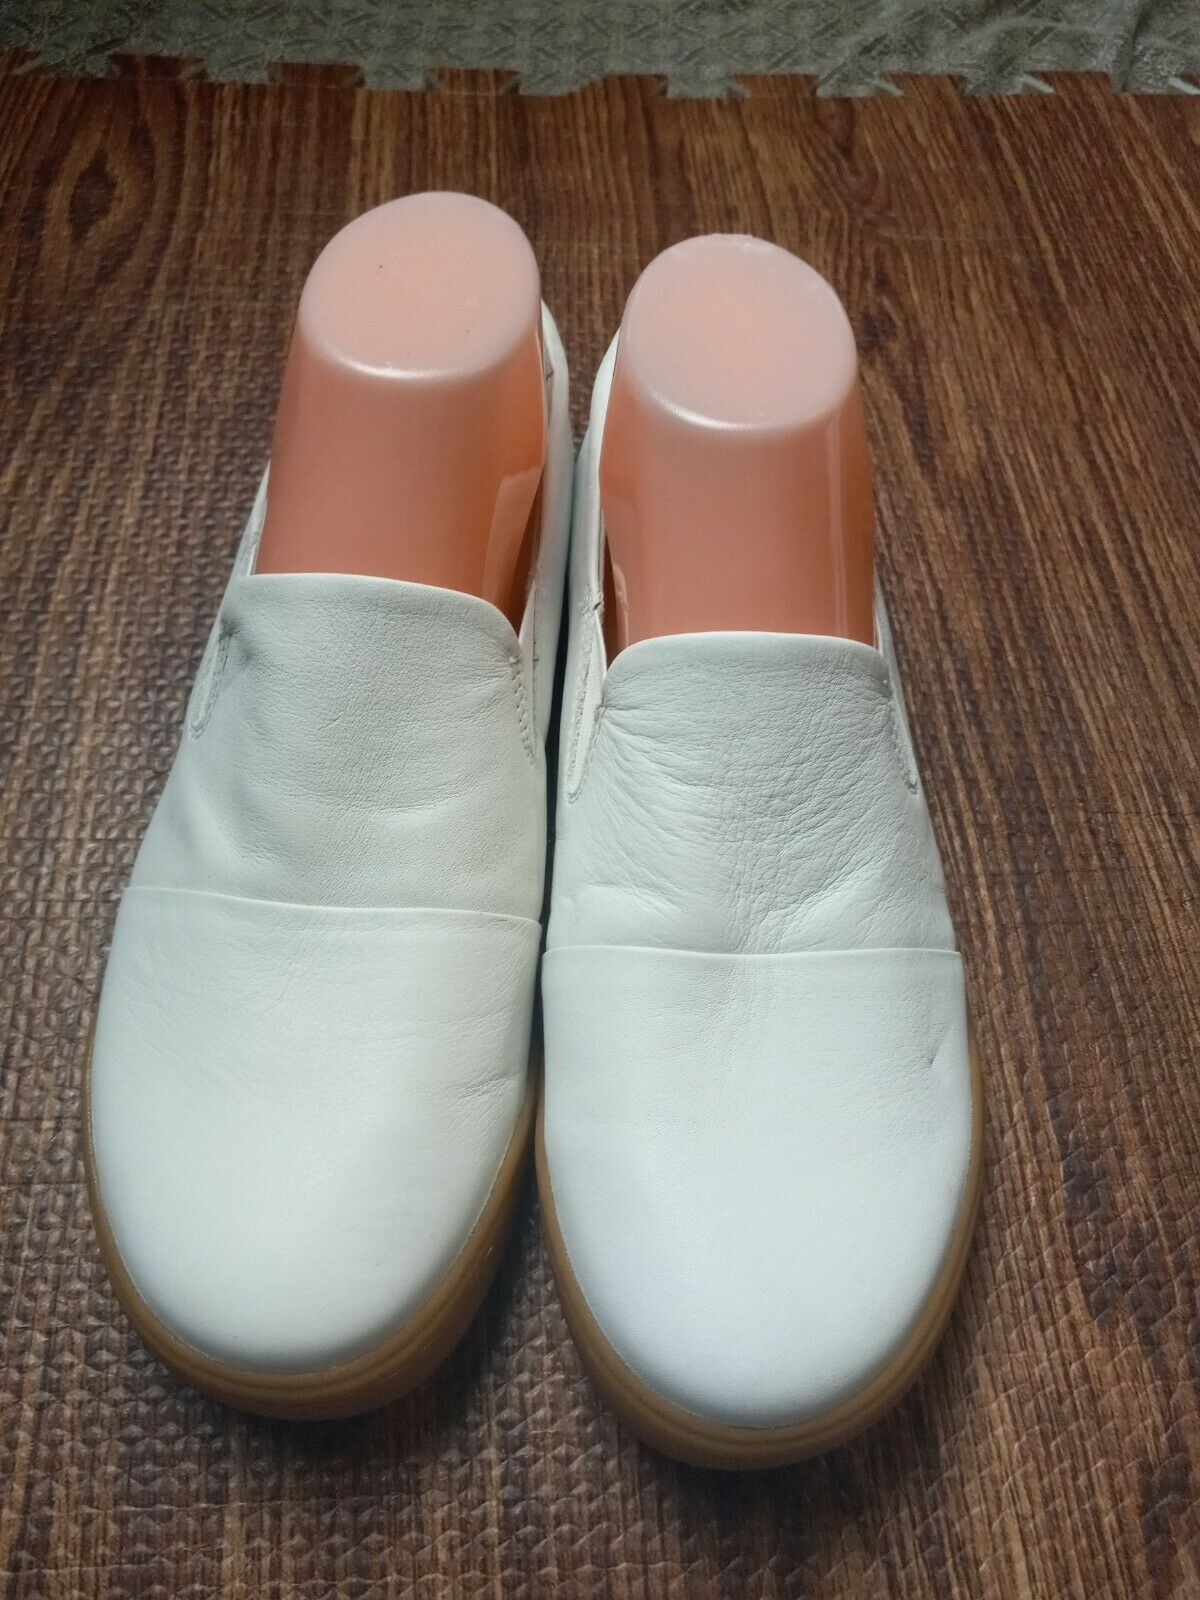 Sofwalk find comfort within flat Leather White shoes Size 8.5 M